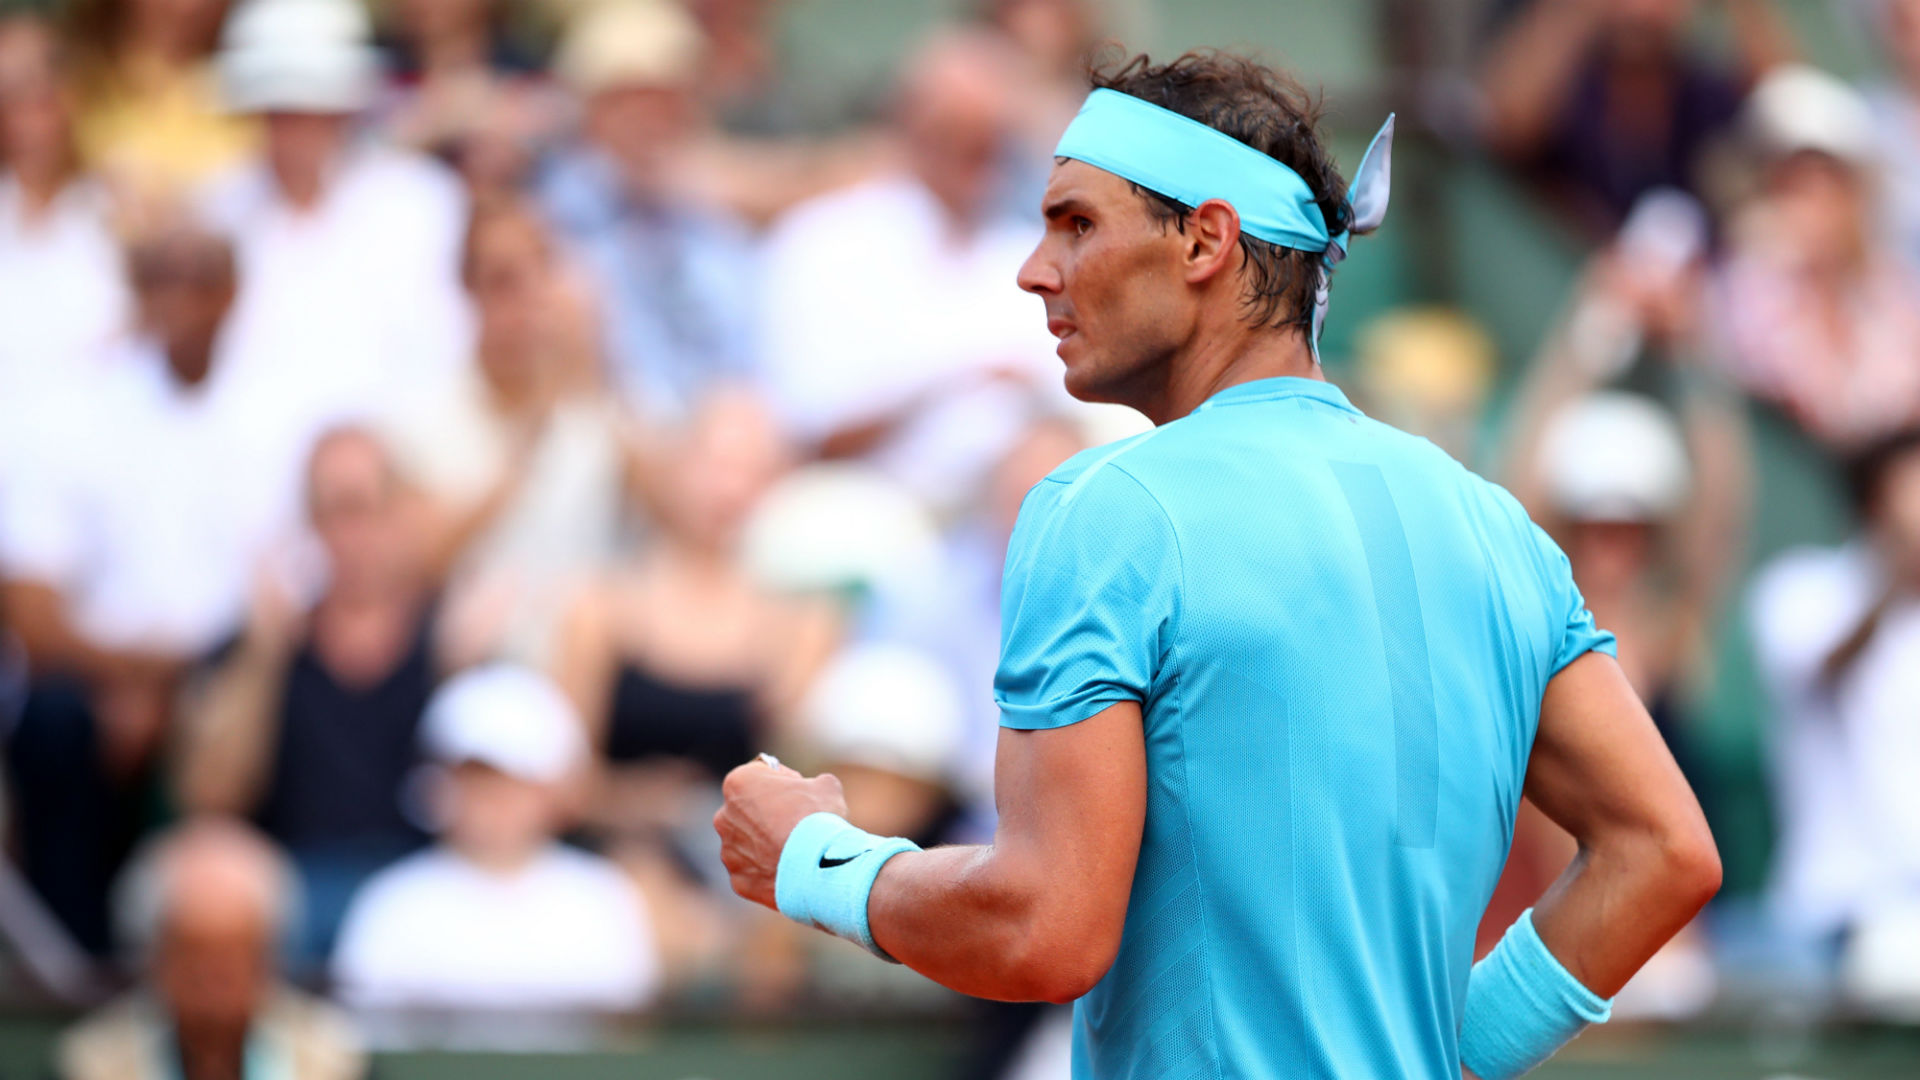 Will Rafael Nadal play in the Olympics?  The tennis star at Wimbledon shows the state of the Olympics